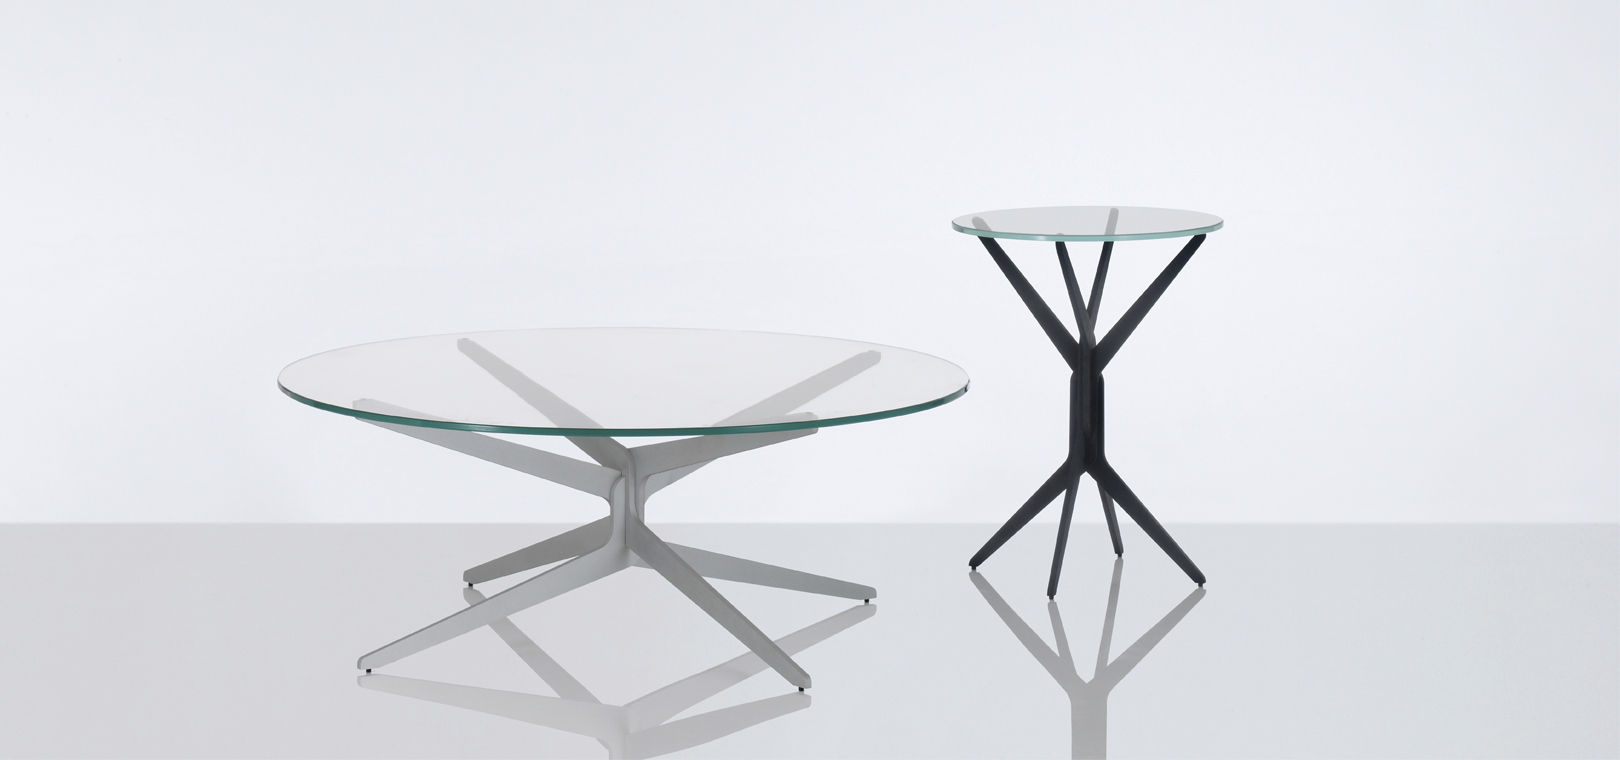 Modern Low Coffee Table By Compressure Molding Was Founded In 1983 With The Aim Glass For Coffee Table Of Increasing The Interest For This Technique (Image 2 of 9)